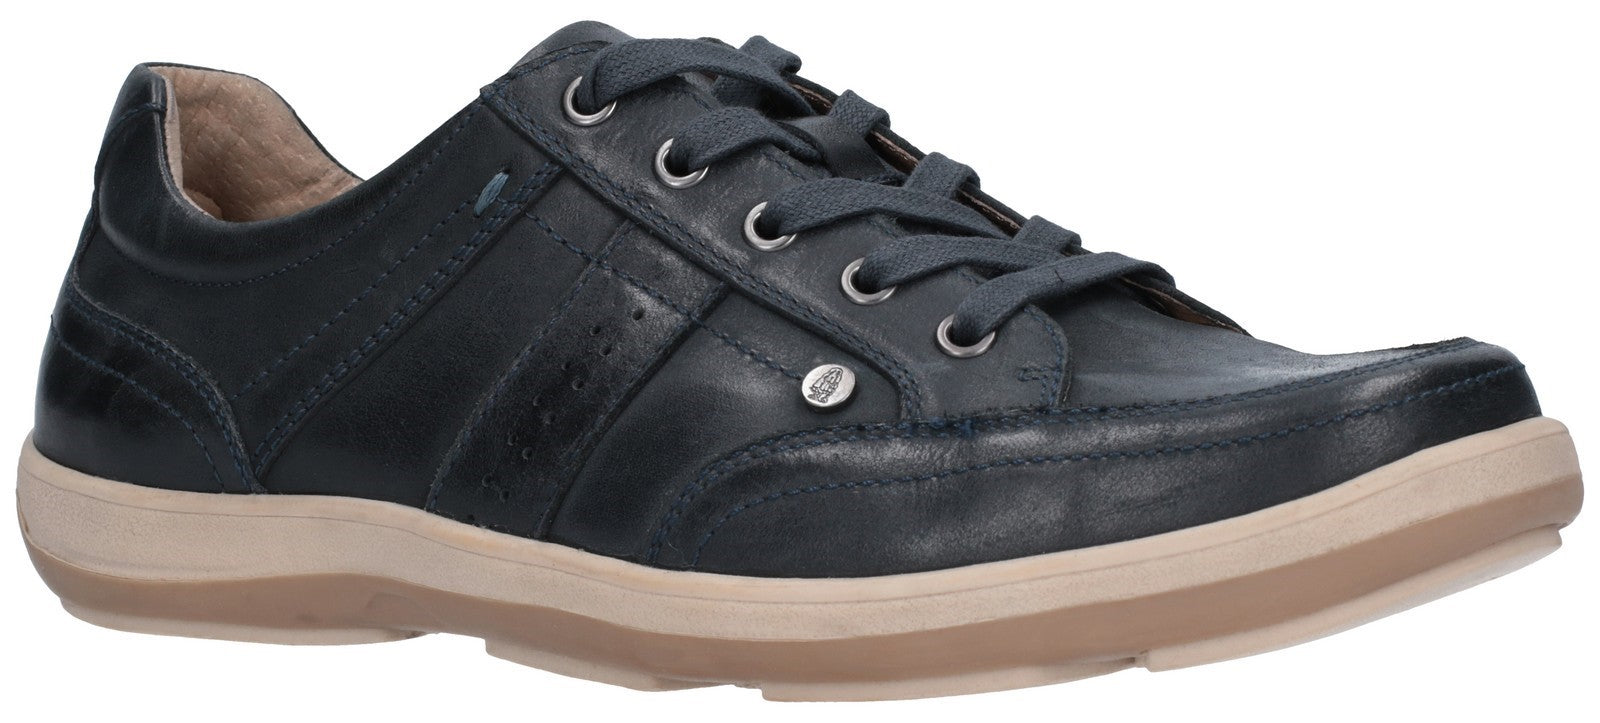 Hush Puppies Men's Vizla Lace Trainer Navy 27368